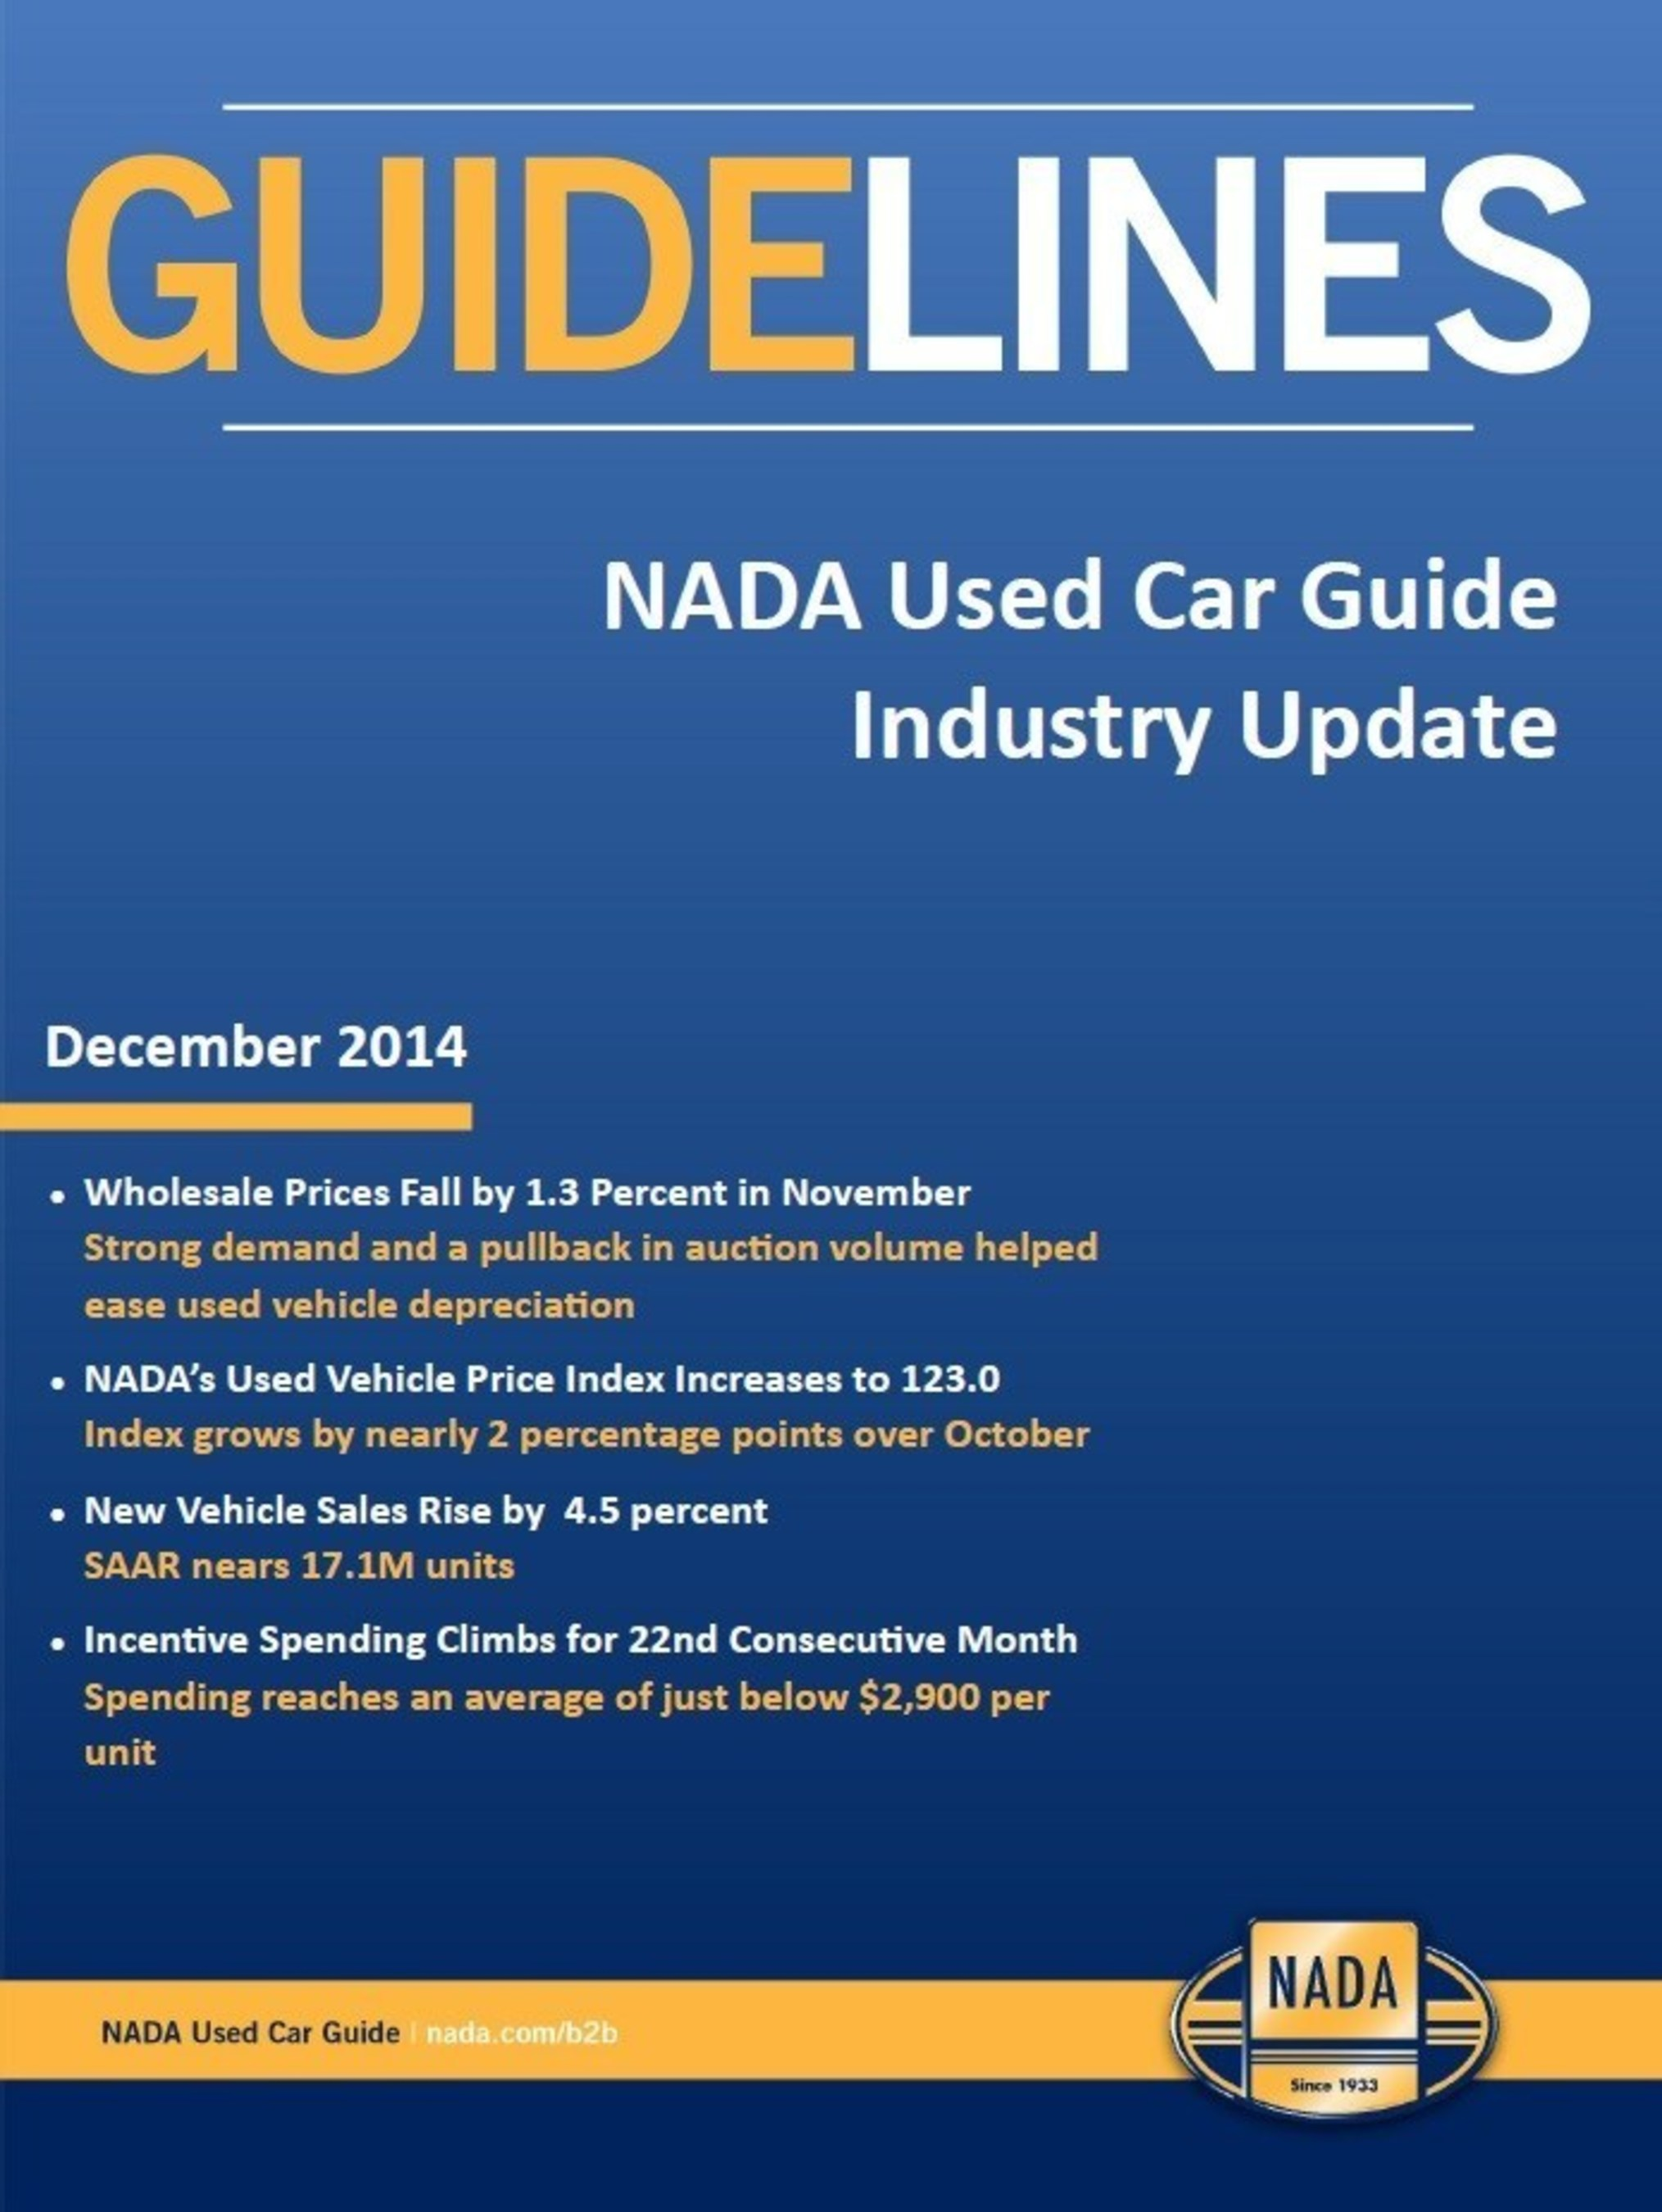 The December 2014 edition of Guidelines notes vehicles sitting in driveways and used car lots managed to keep more of their value this past month, due to strong demand within the used vehicle market and a decrease in cars sold at wholesale auction.